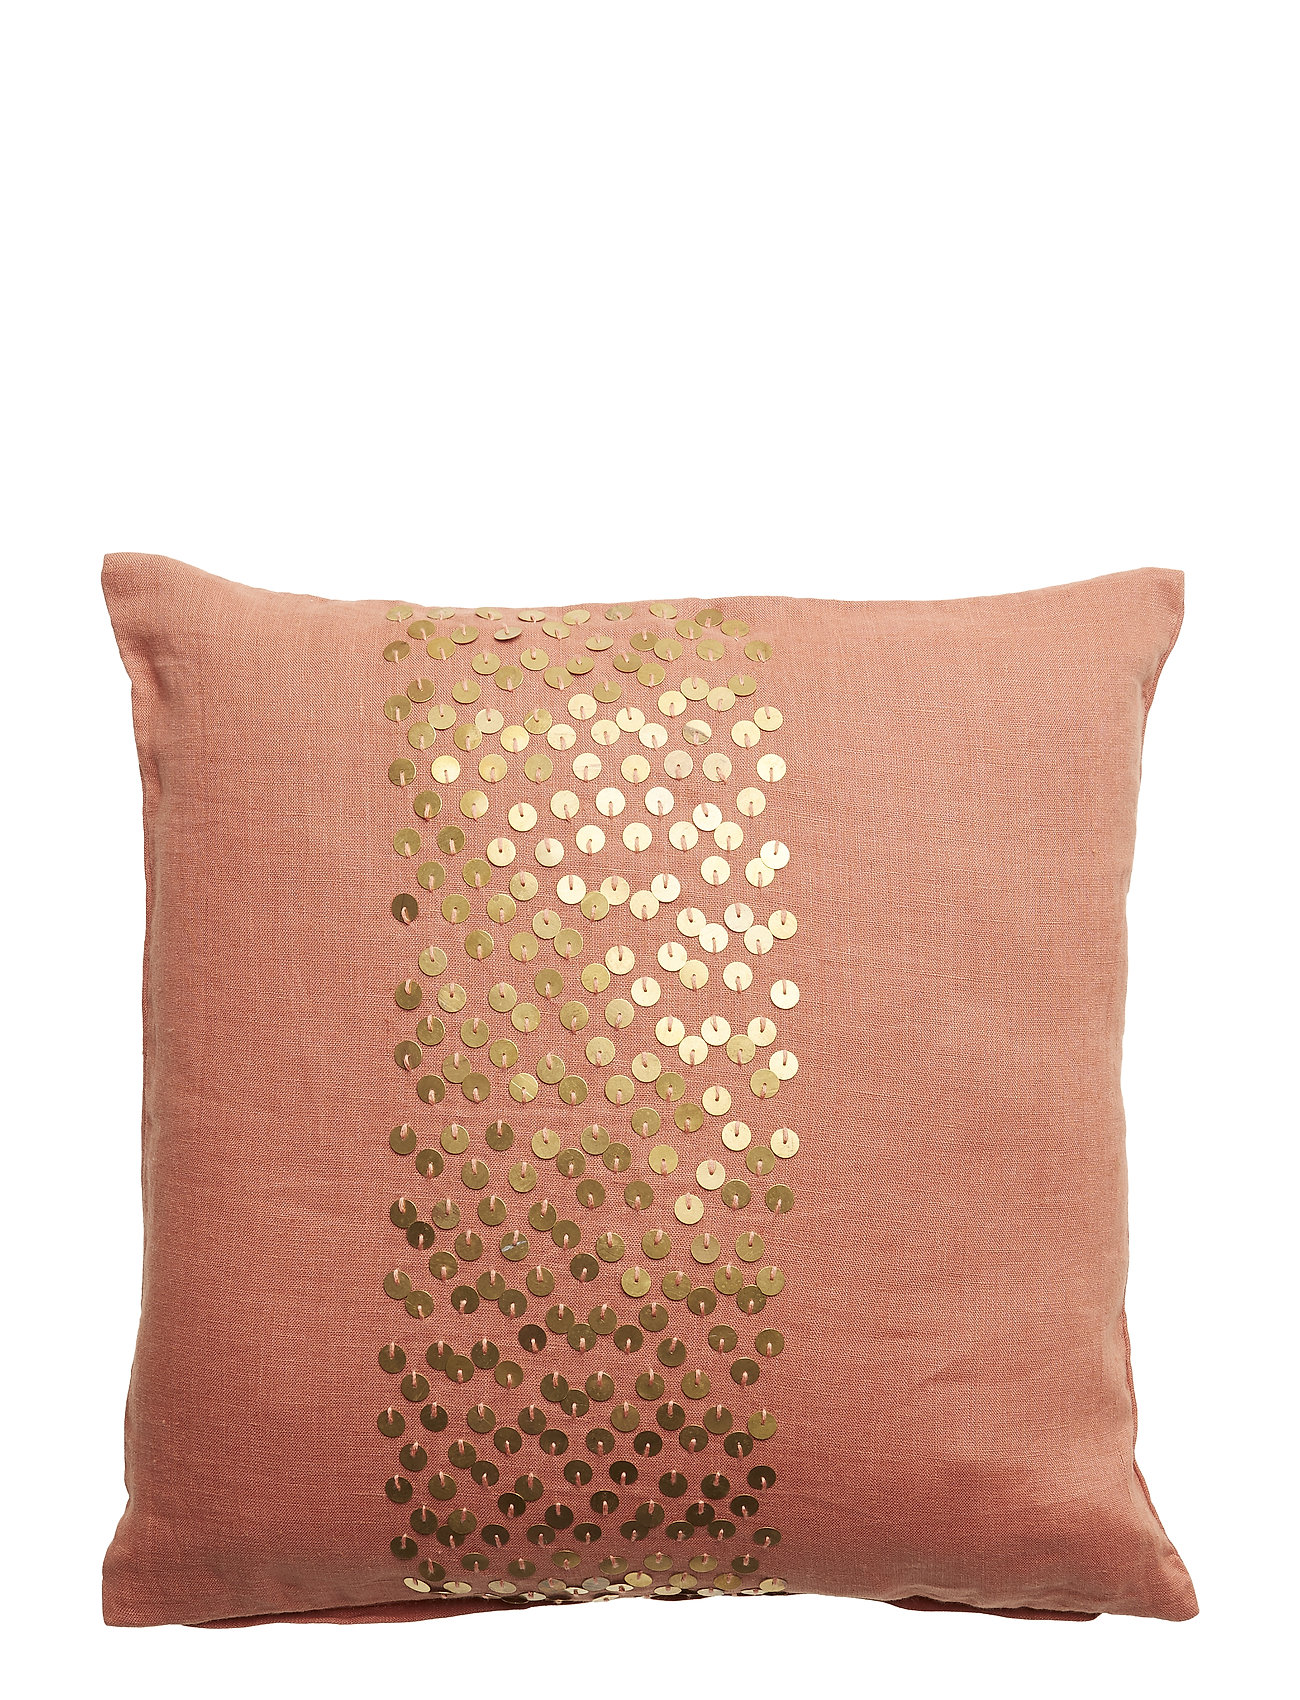 DAY Home Day Maroc Cushion Cover - KISS